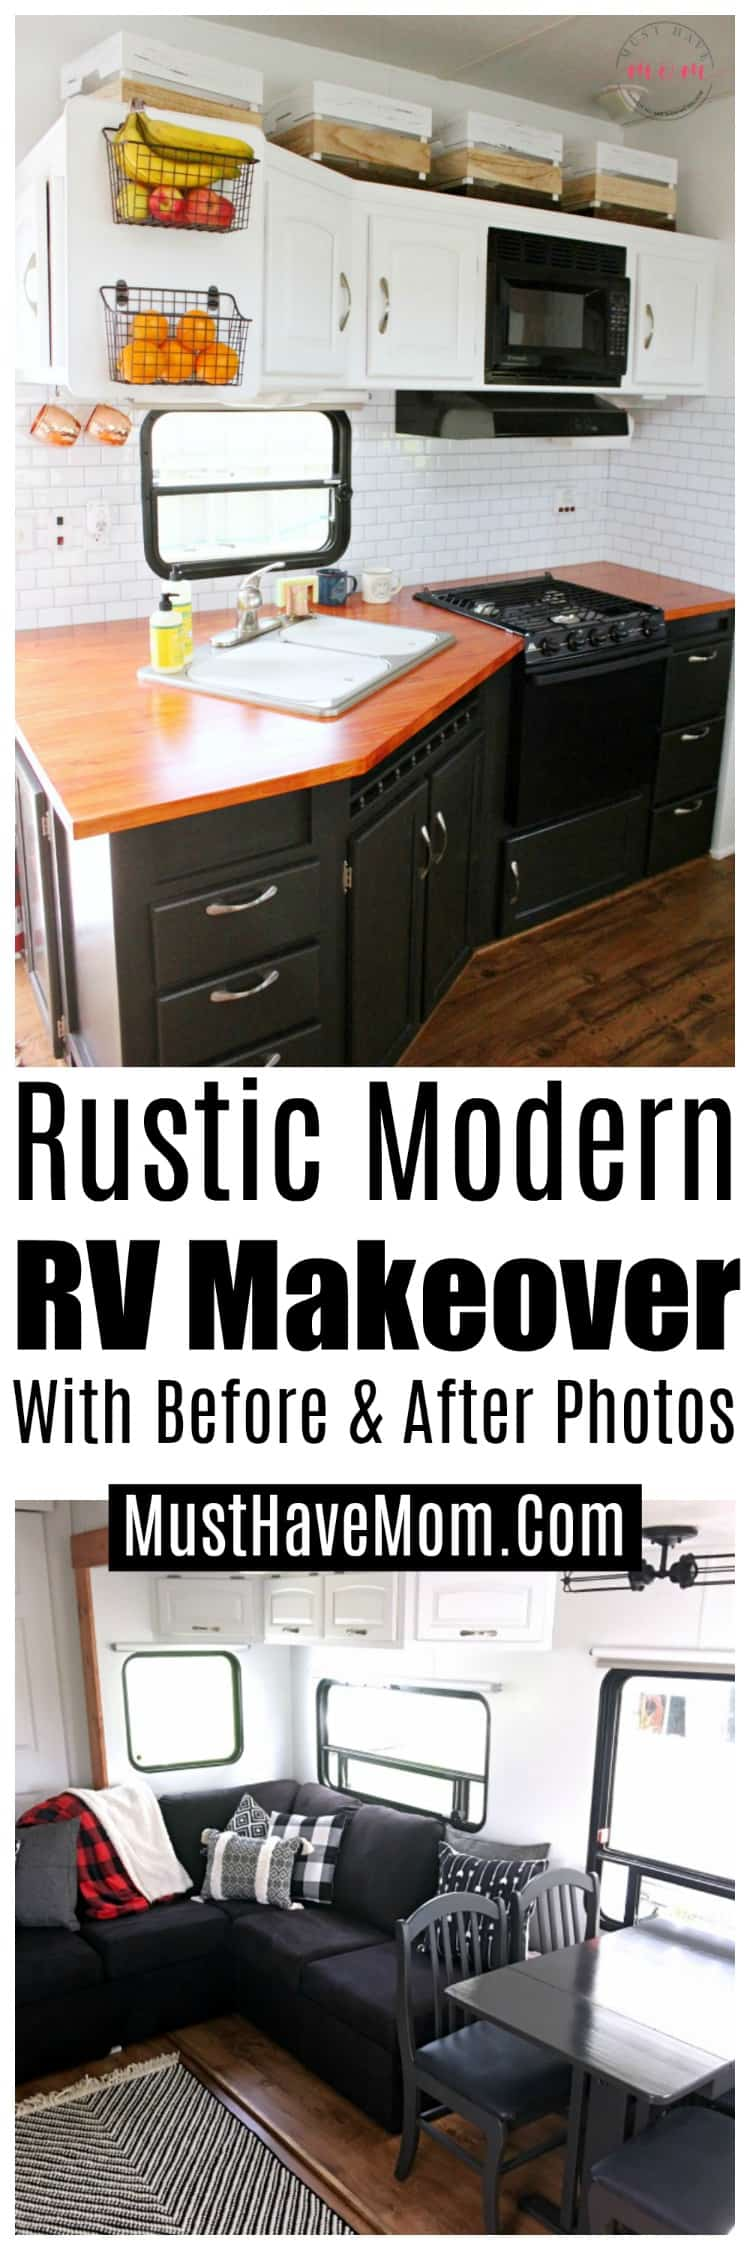 Rustic modern RV makeover with before and after photos. Love the cozy mountain vibe! #camper #makeover #RV #RVmakeover #mountain #modern #DIY #rustic #cozy #fifthwheel #RVlife #camping